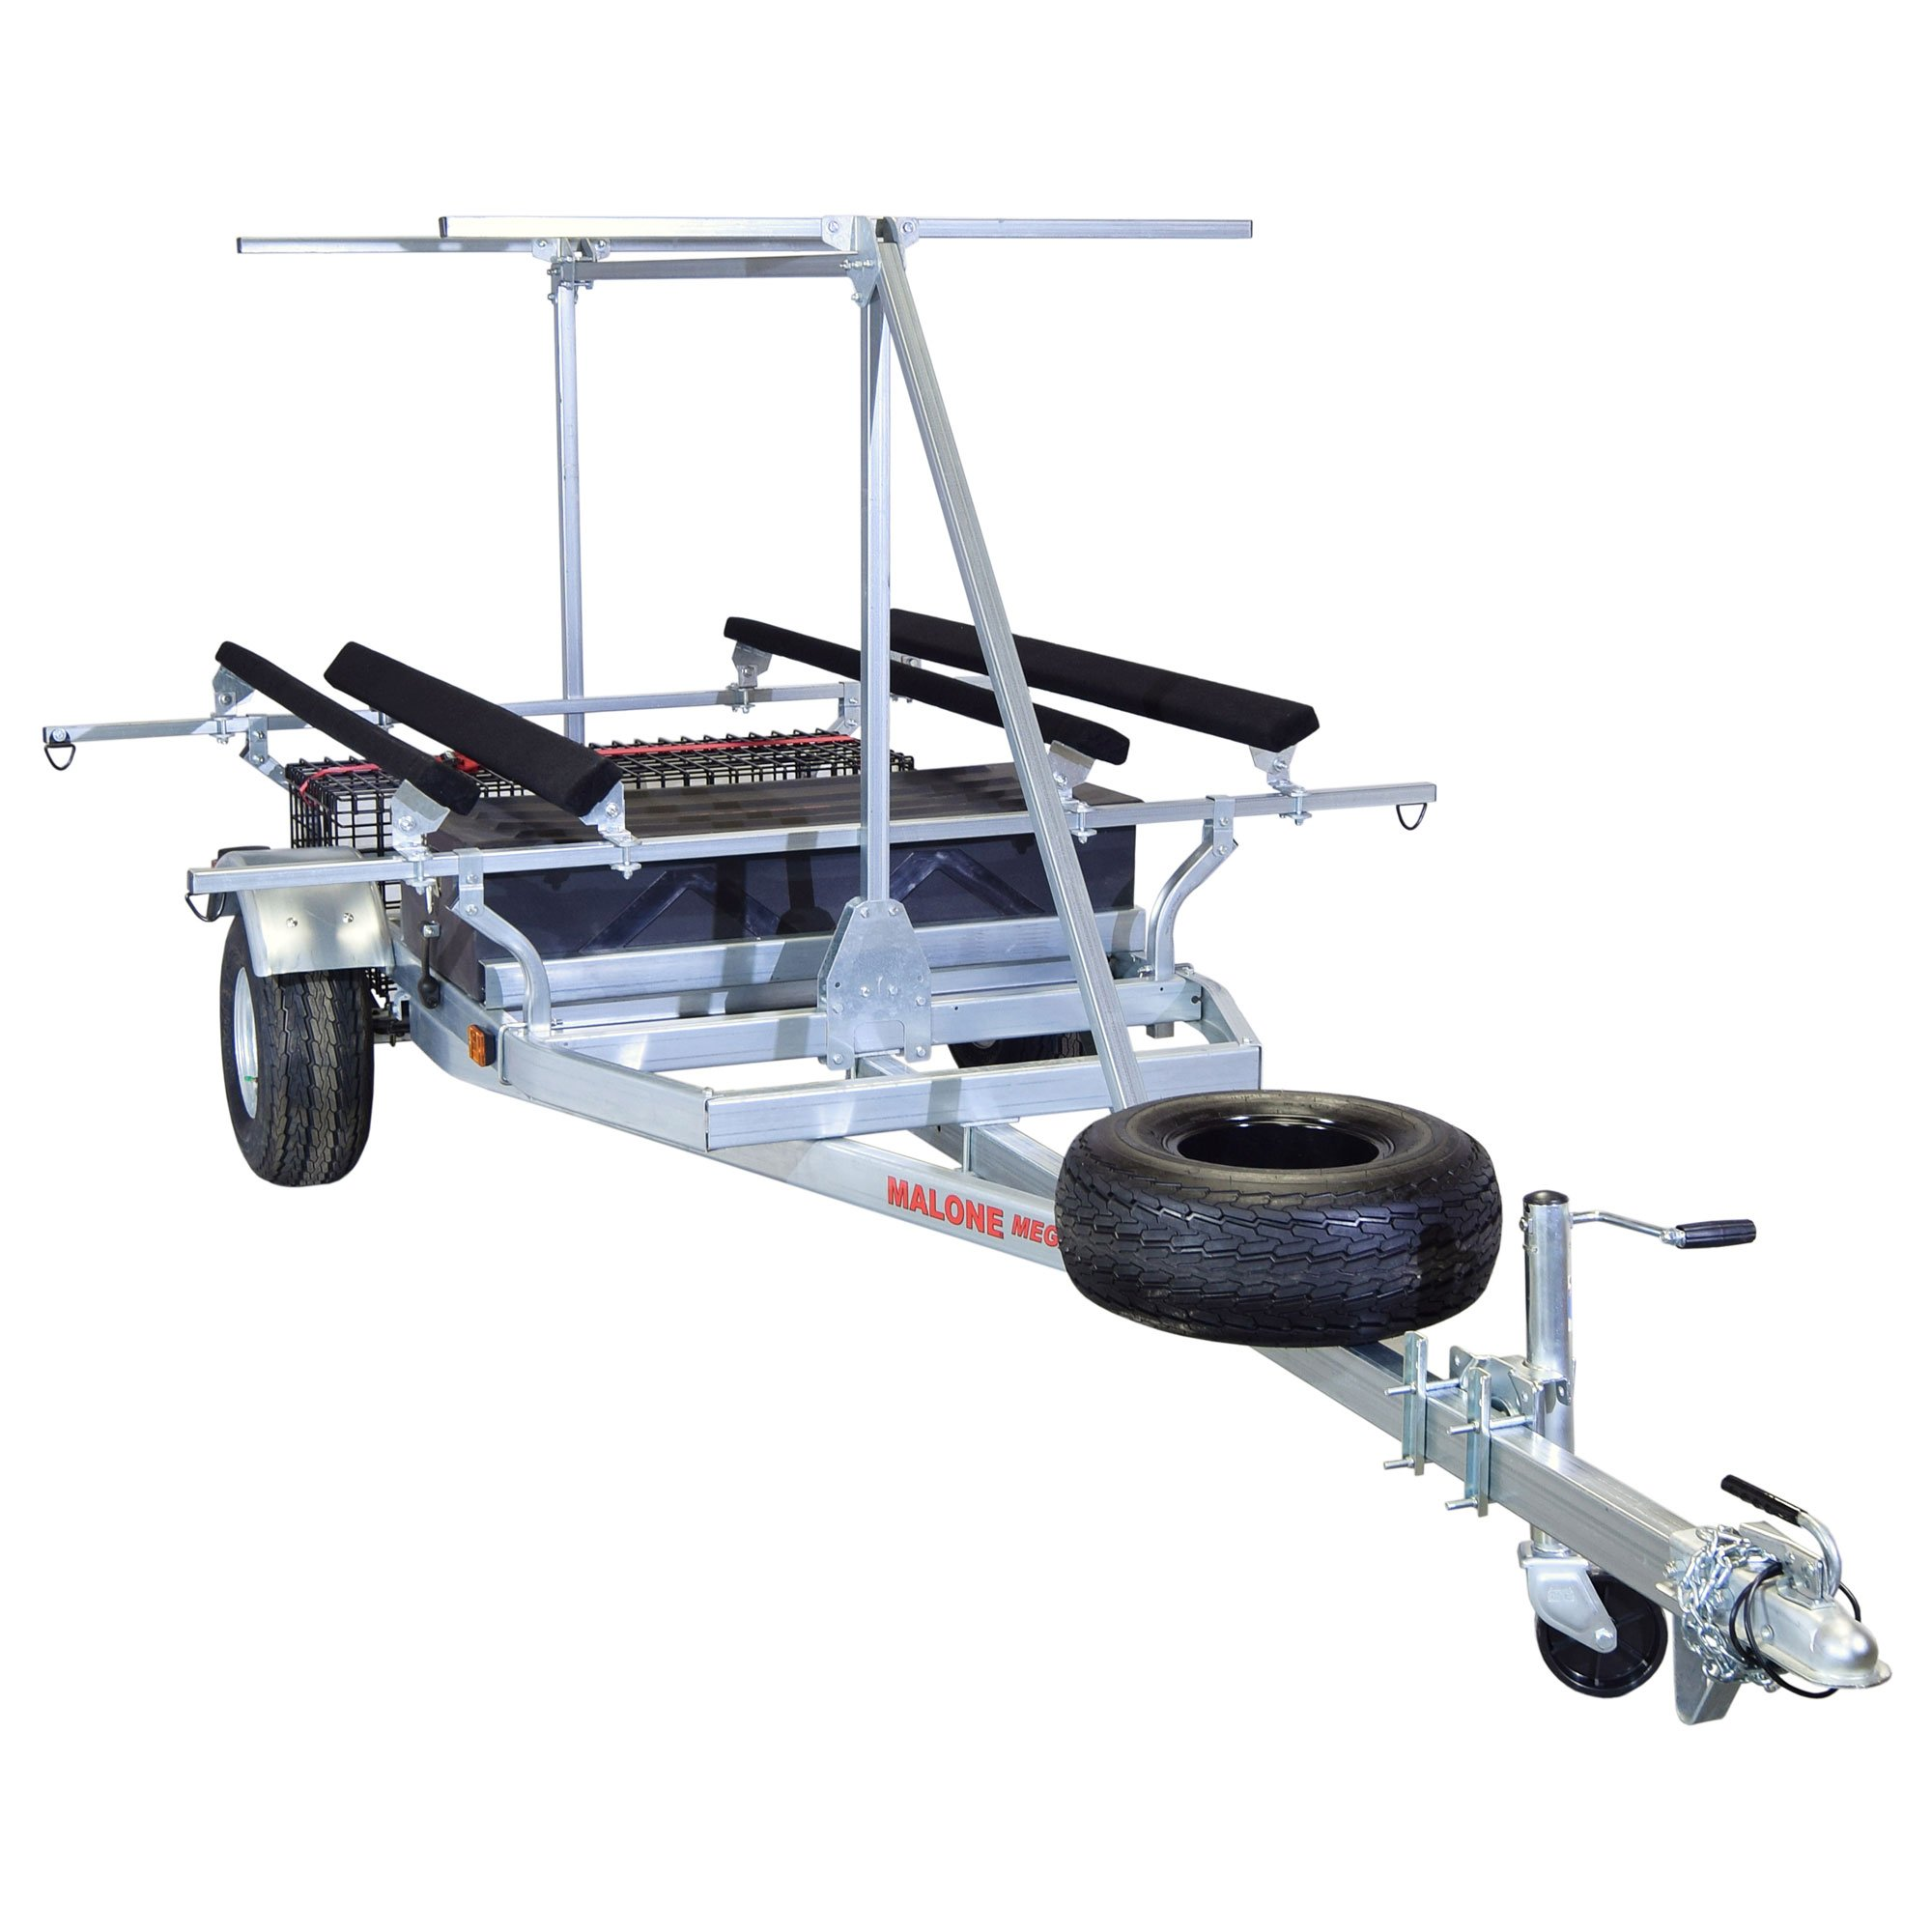 Malone MegaSport 2-Boat Hobie PA Trailer Package w/ 2nd Tier by Malone